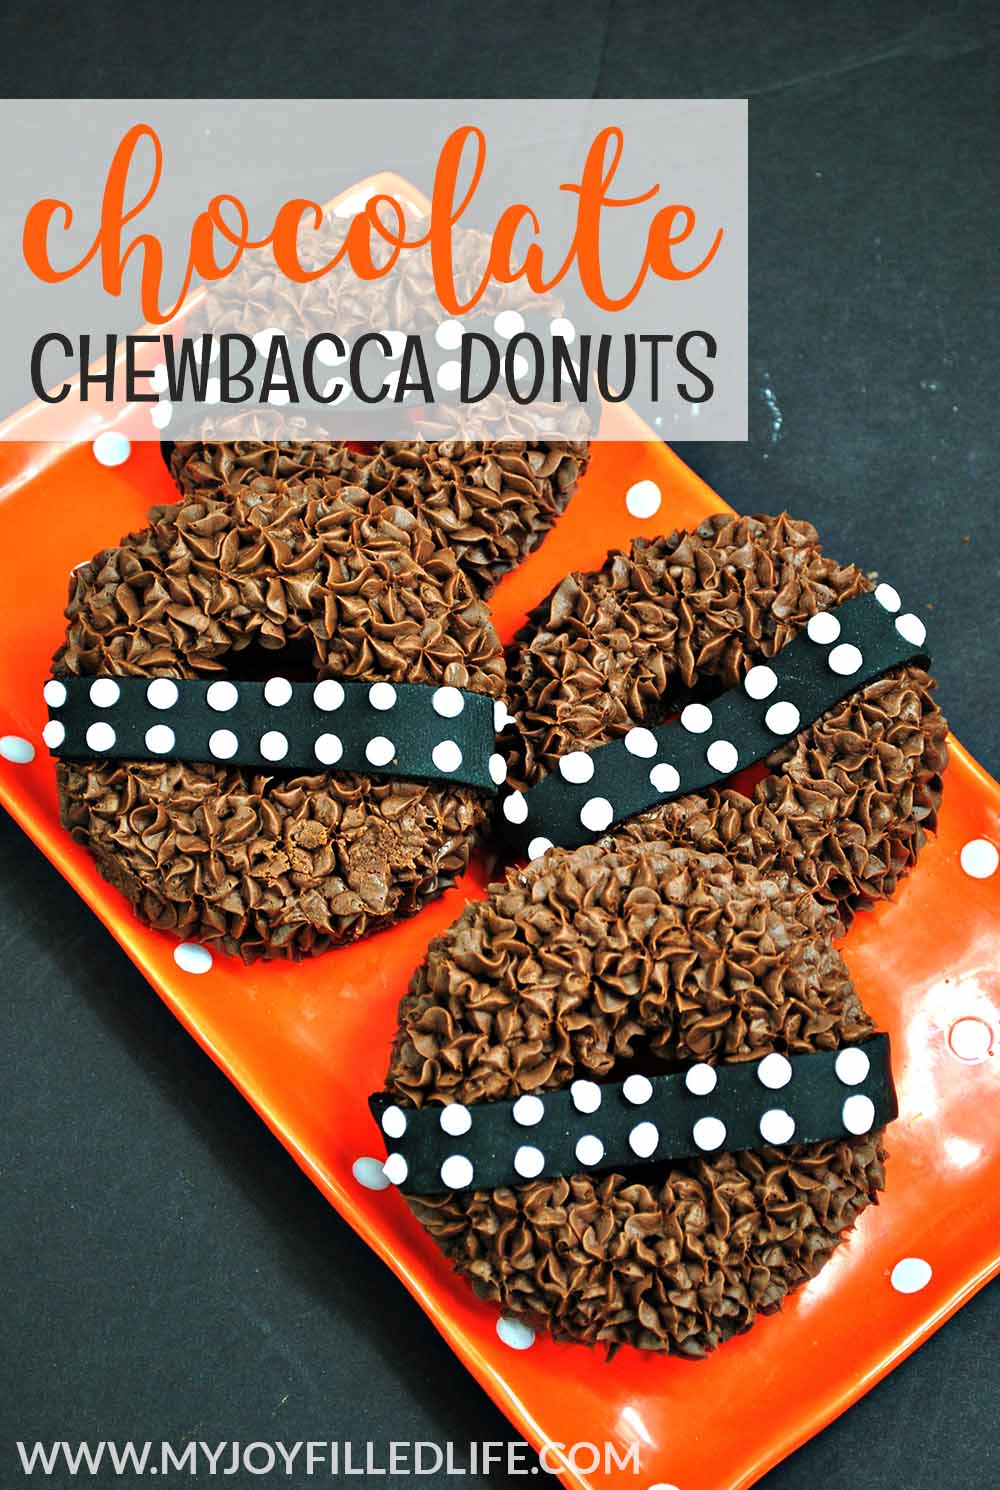 Chocolate Chewbacca Donuts from My Joy-Filled Life